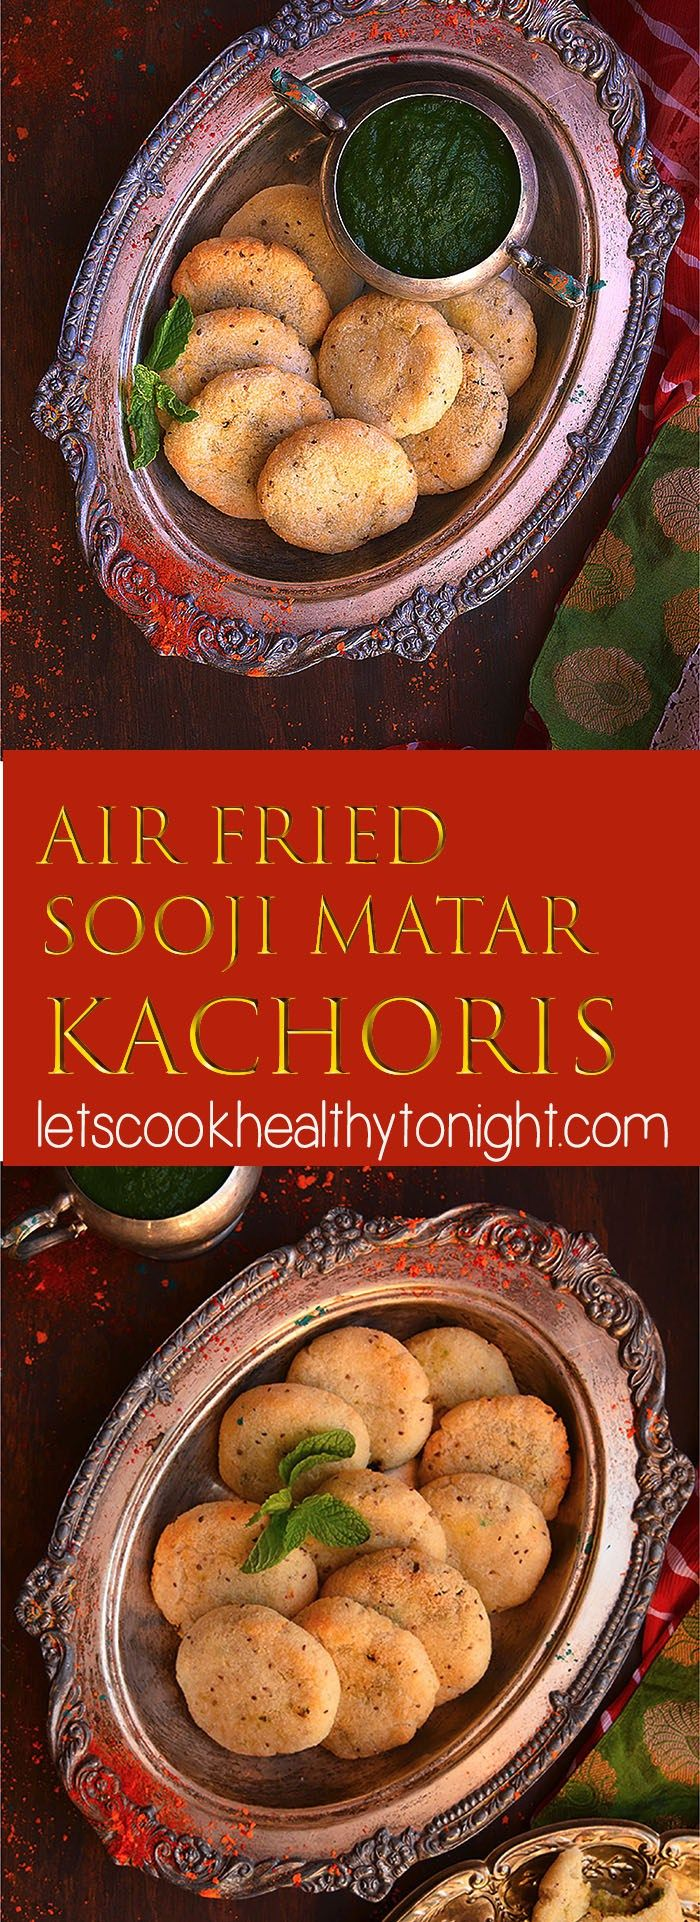 Air fried Sooji Matar Kachoris are a very delicious and healthy version of traditional deep fried Sooji Kachoris made with semolina and green peas.